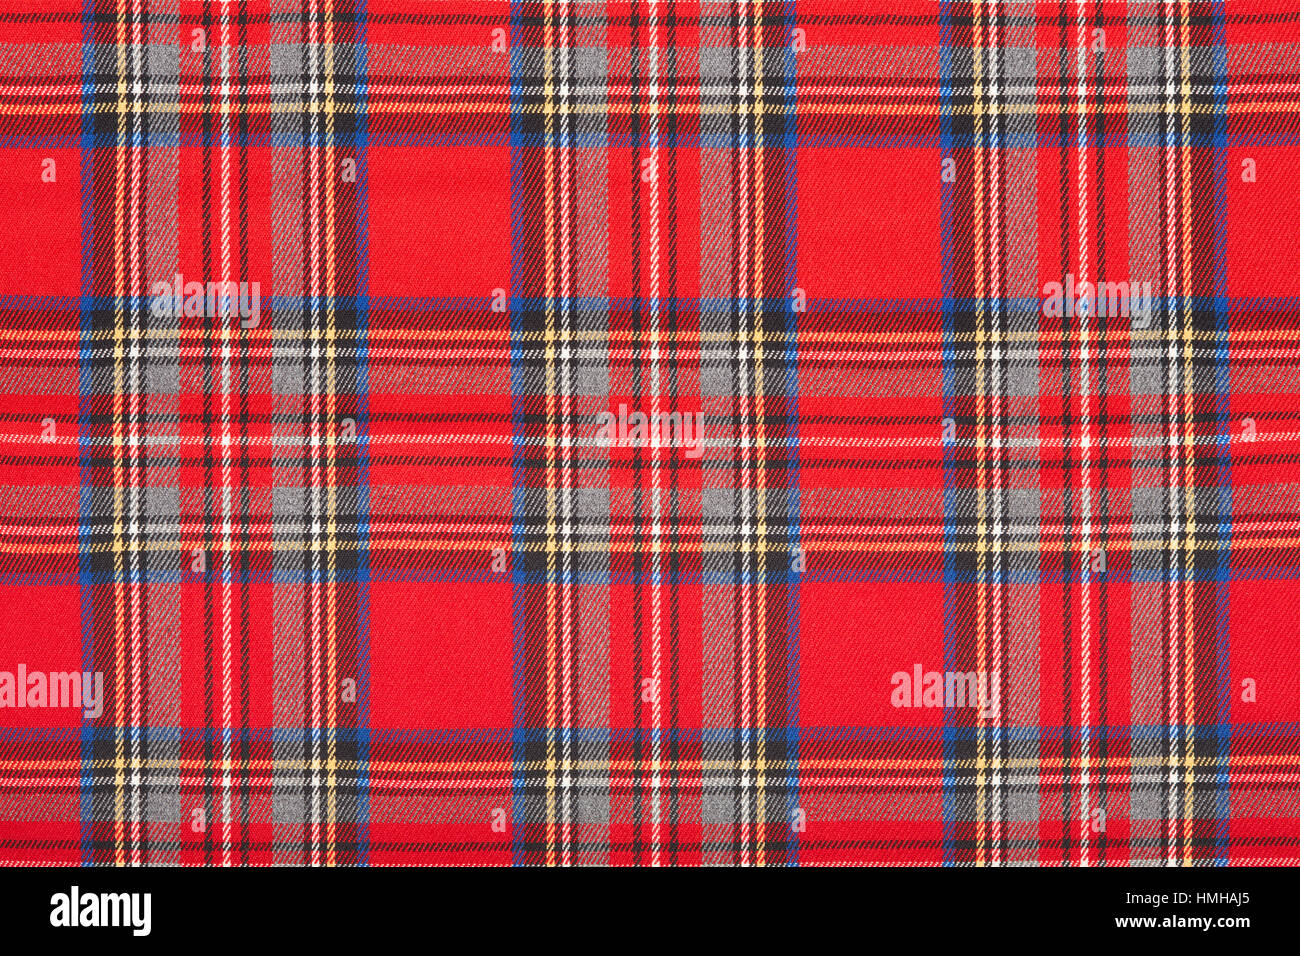 Red tartan scottish fabric texture background - Stock Image